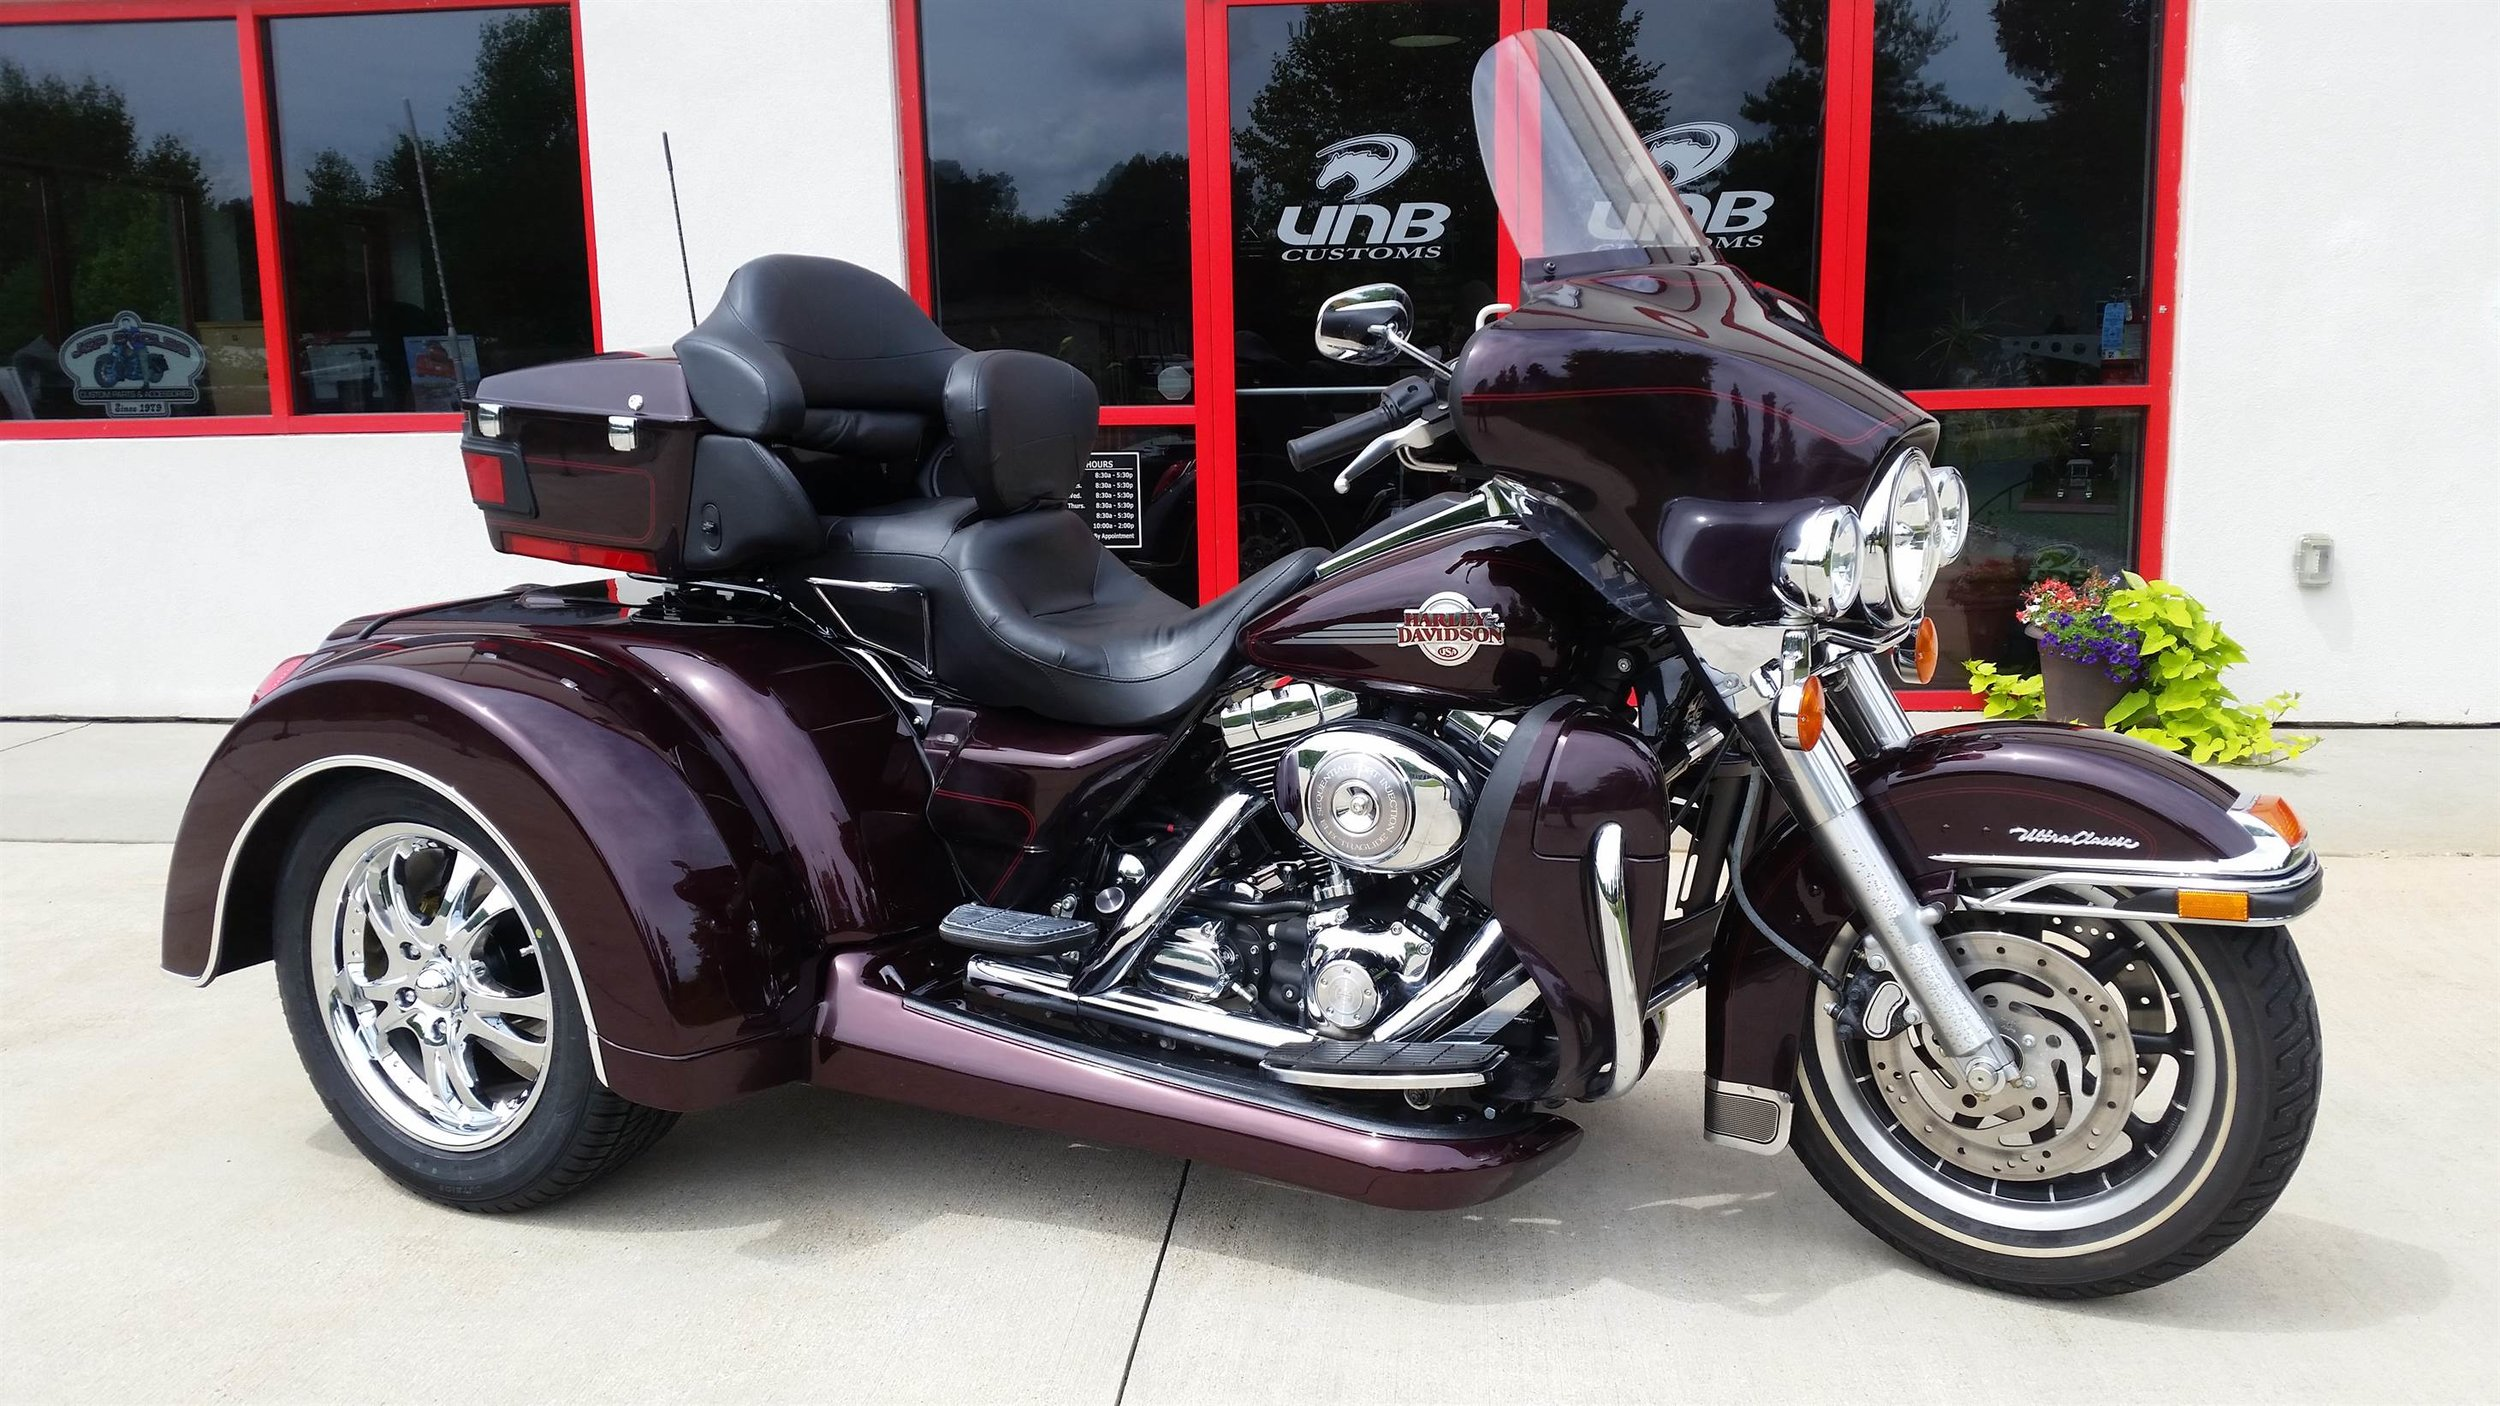 Road Glide Roadsmith trike independent suspension and reverse